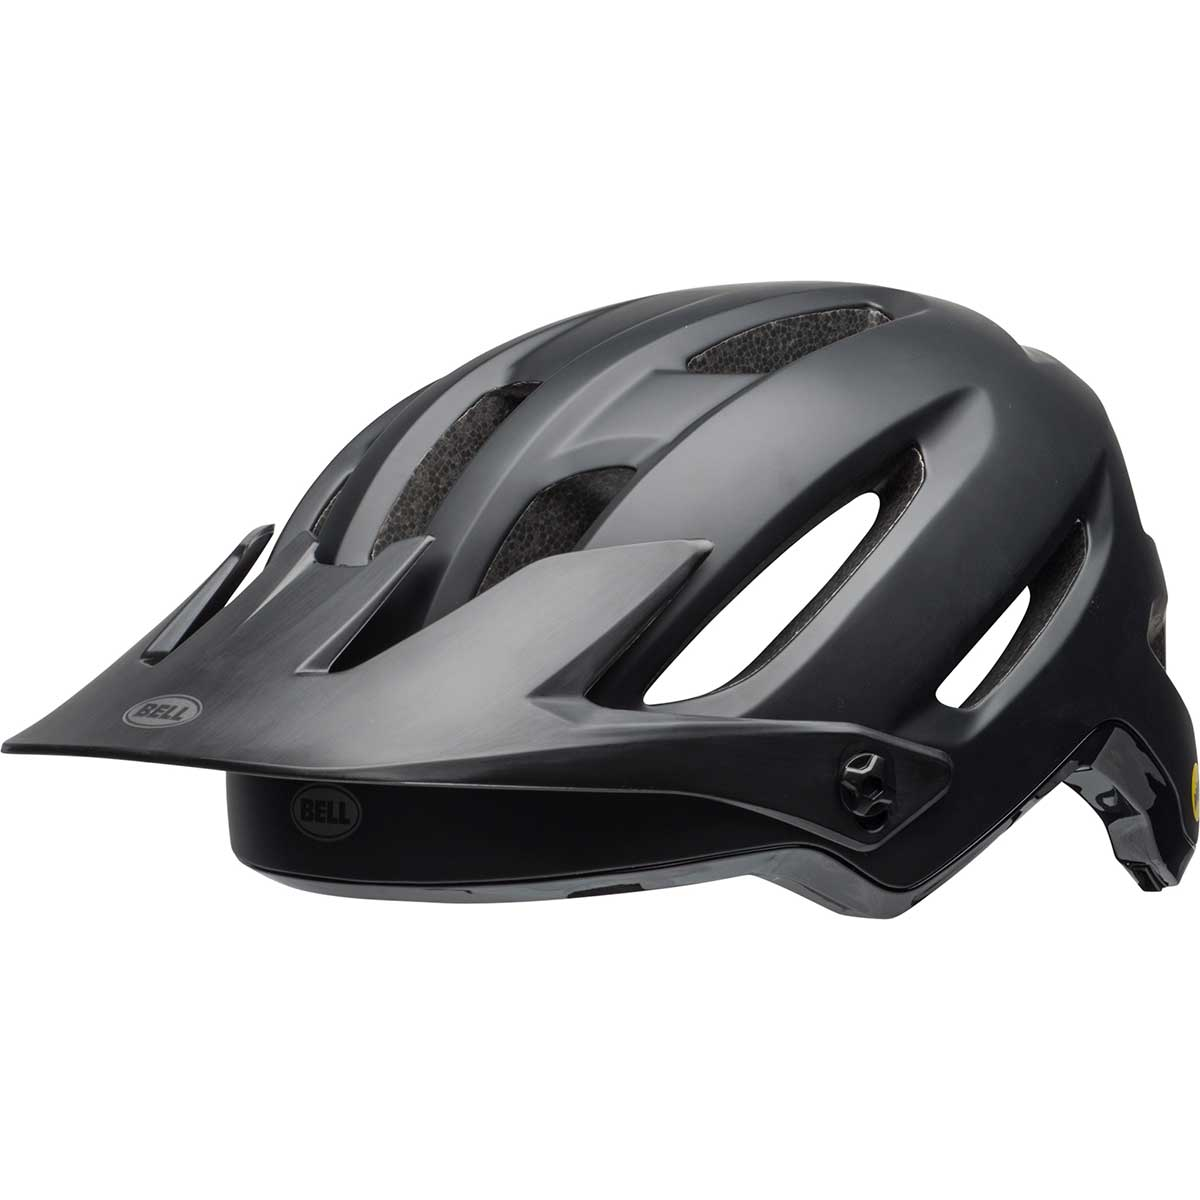 Bell 4Forty MIPS bike helmet in Gloss Black